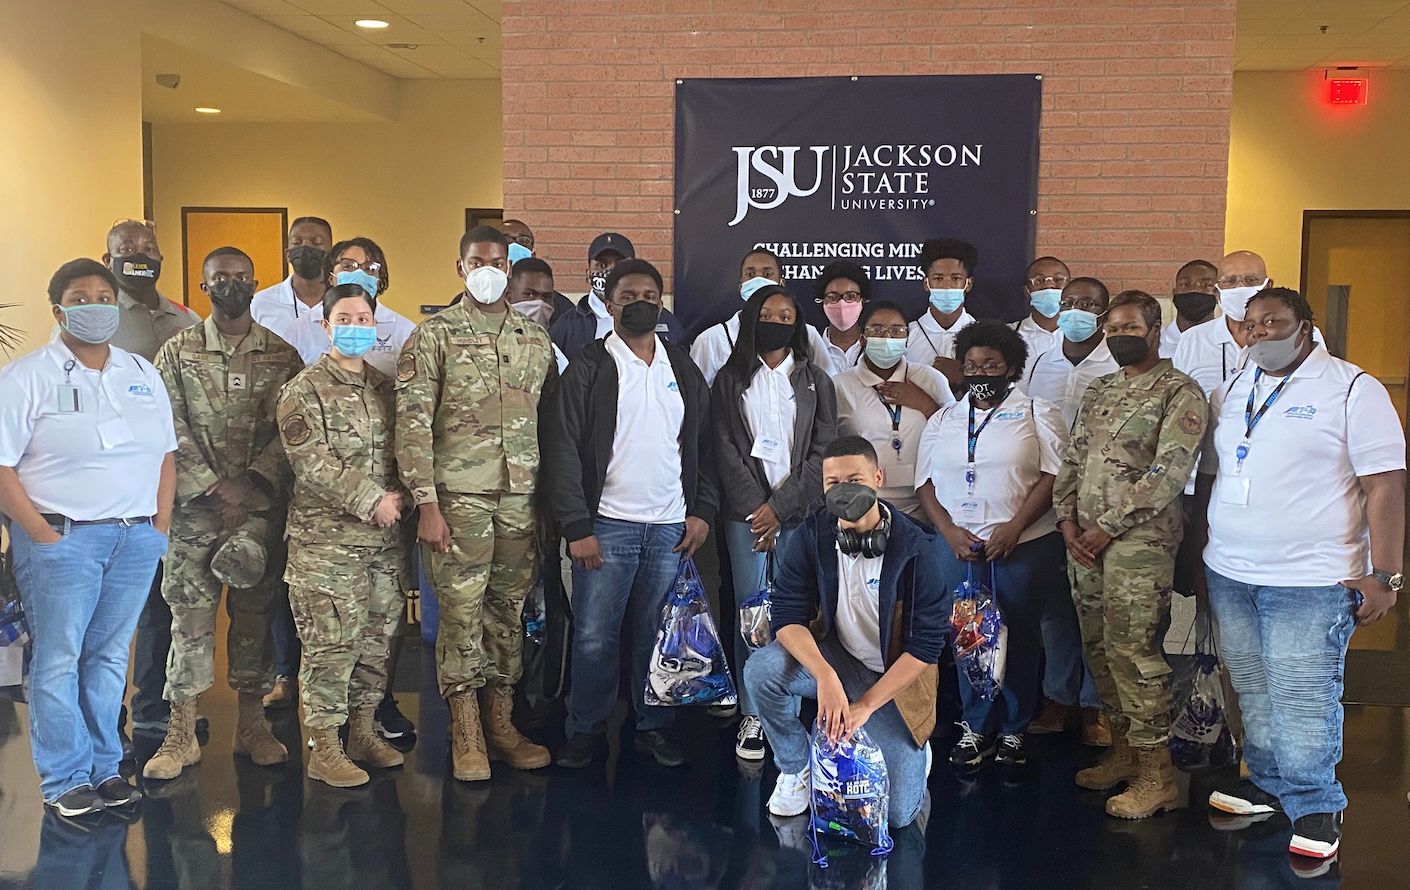 Members of Jackson State University's Air Force ROTC partnered with the Jackson Municipal Airport Authority and Jackson Public Schools to introduce high school students to career opportunities in aviation and aerospace in the armed forces. (Photo courtesy of JSU Air Force ROTC)